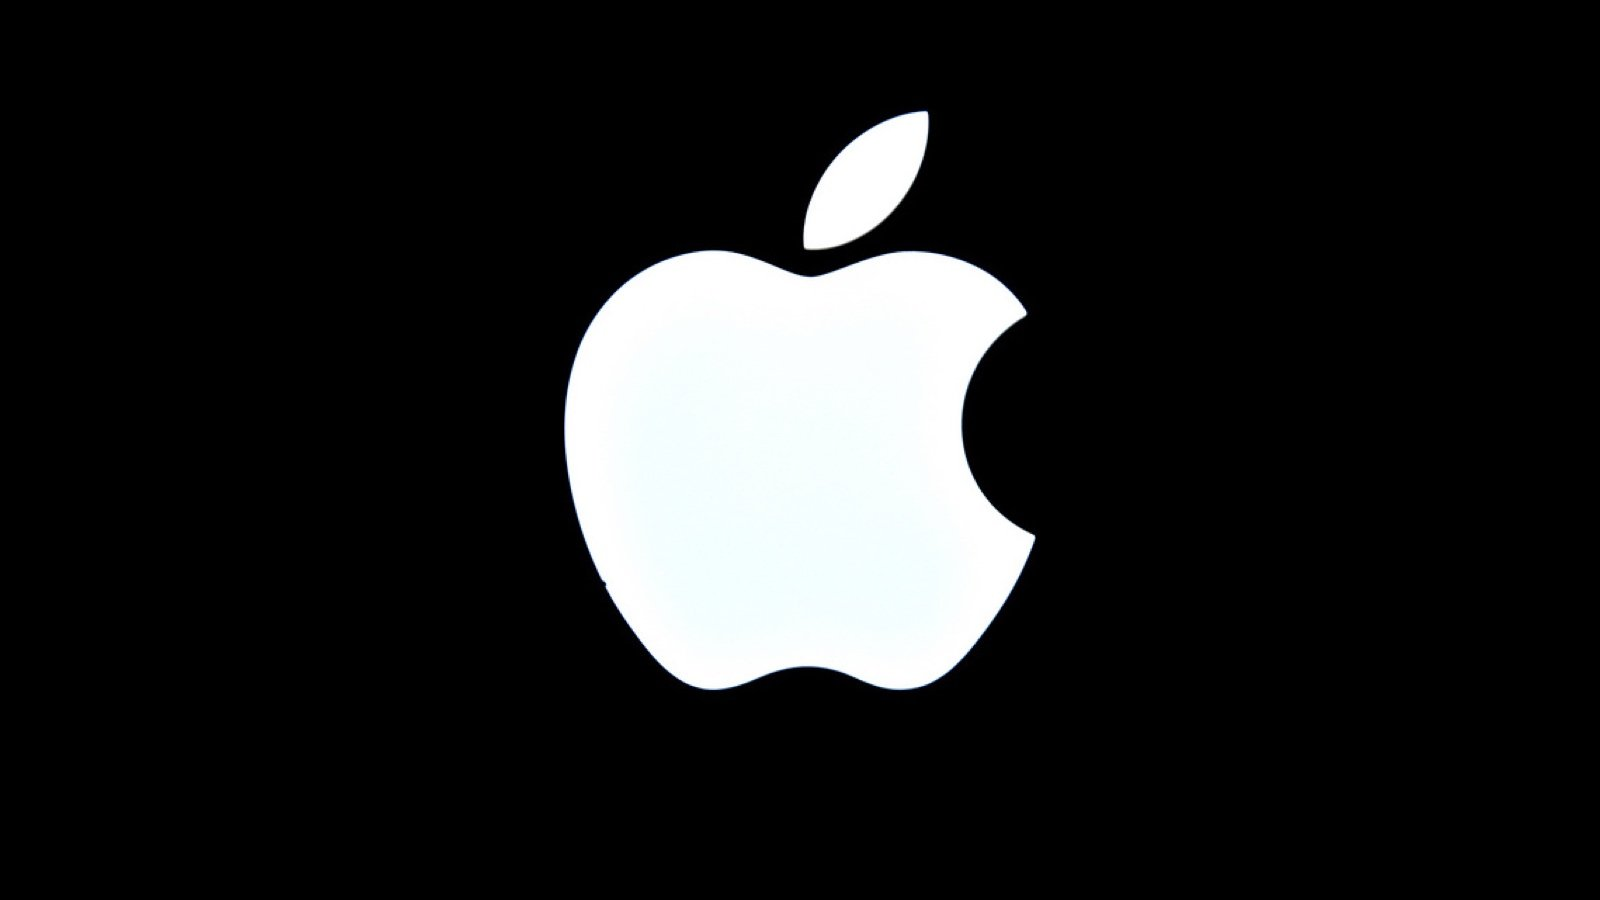 White Apple logo